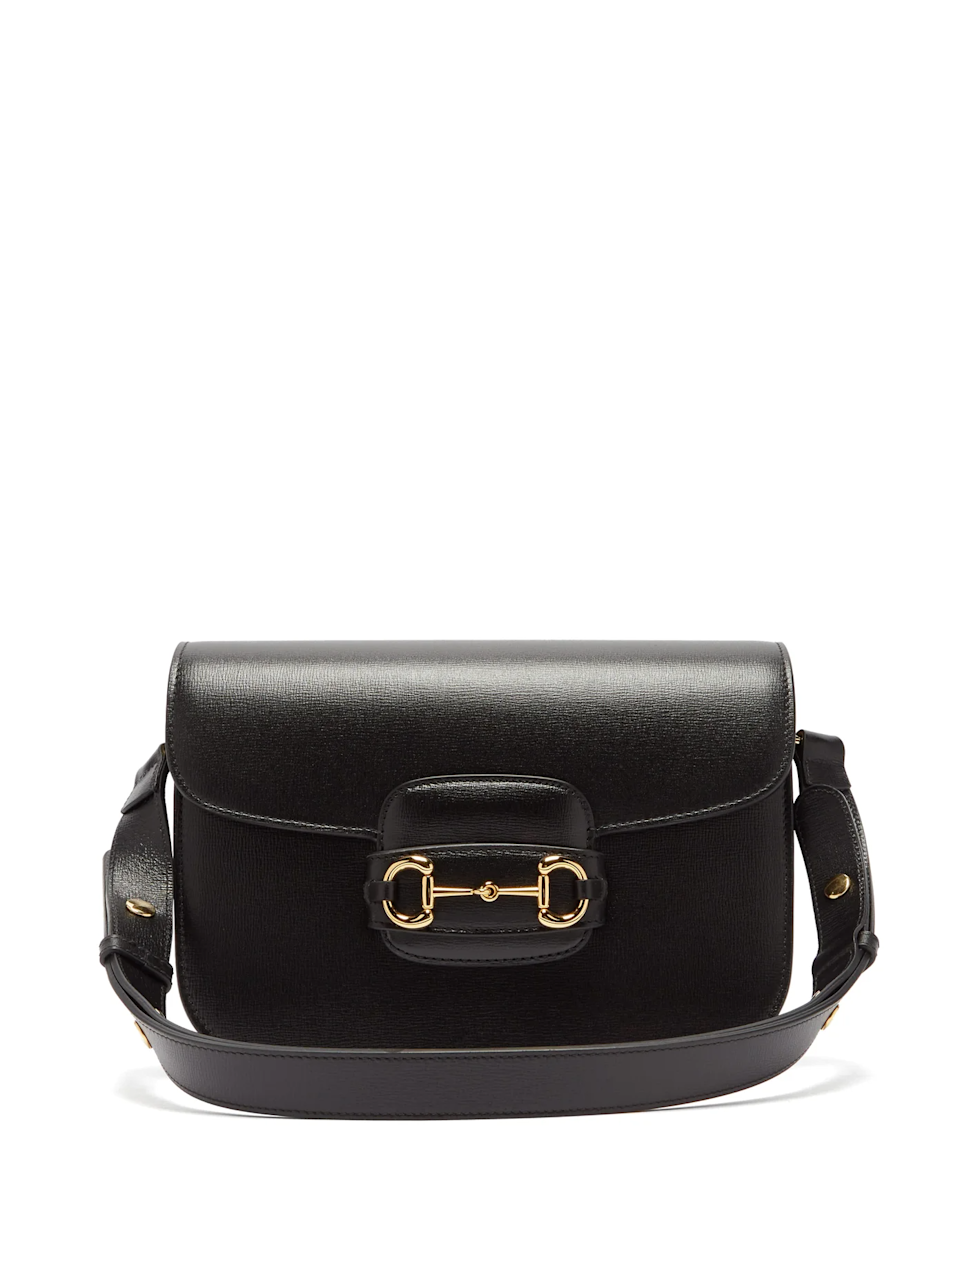 "<br><br><strong>Gucci</strong> 1955 Horsebit Grained-leather Shoulder Bag, $, available at <a href=""https://go.skimresources.com/?id=30283X879131&url=https%3A%2F%2Fwww.matchesfashion.com%2Fus%2Fproducts%2FGucci-1955-Horsebit-grained-leather-shoulder-bag-1320827"" rel=""nofollow noopener"" target=""_blank"" data-ylk=""slk:MatchesFashion.com"" class=""link rapid-noclick-resp"">MatchesFashion.com</a>"